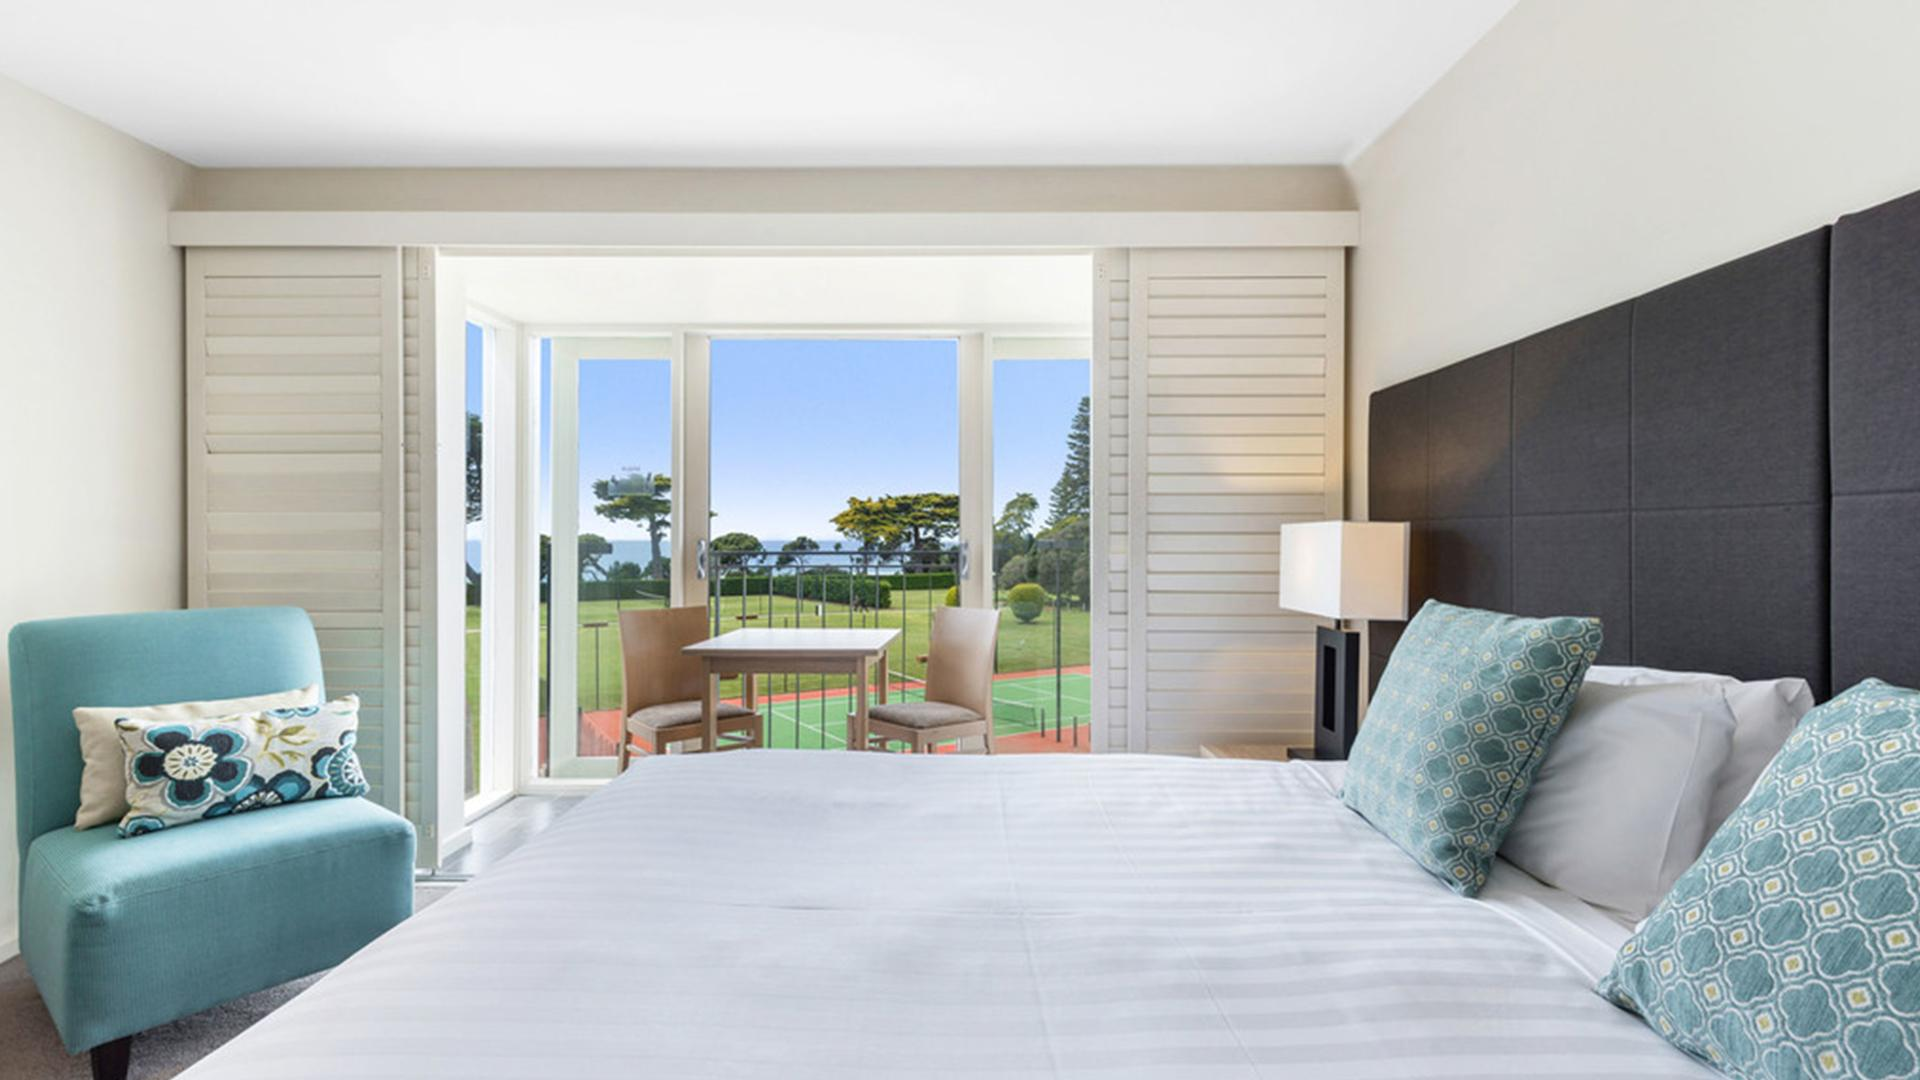 Resort Room image 1 at Mantra Lorne by Surf Coast Shire, Victoria, Australia